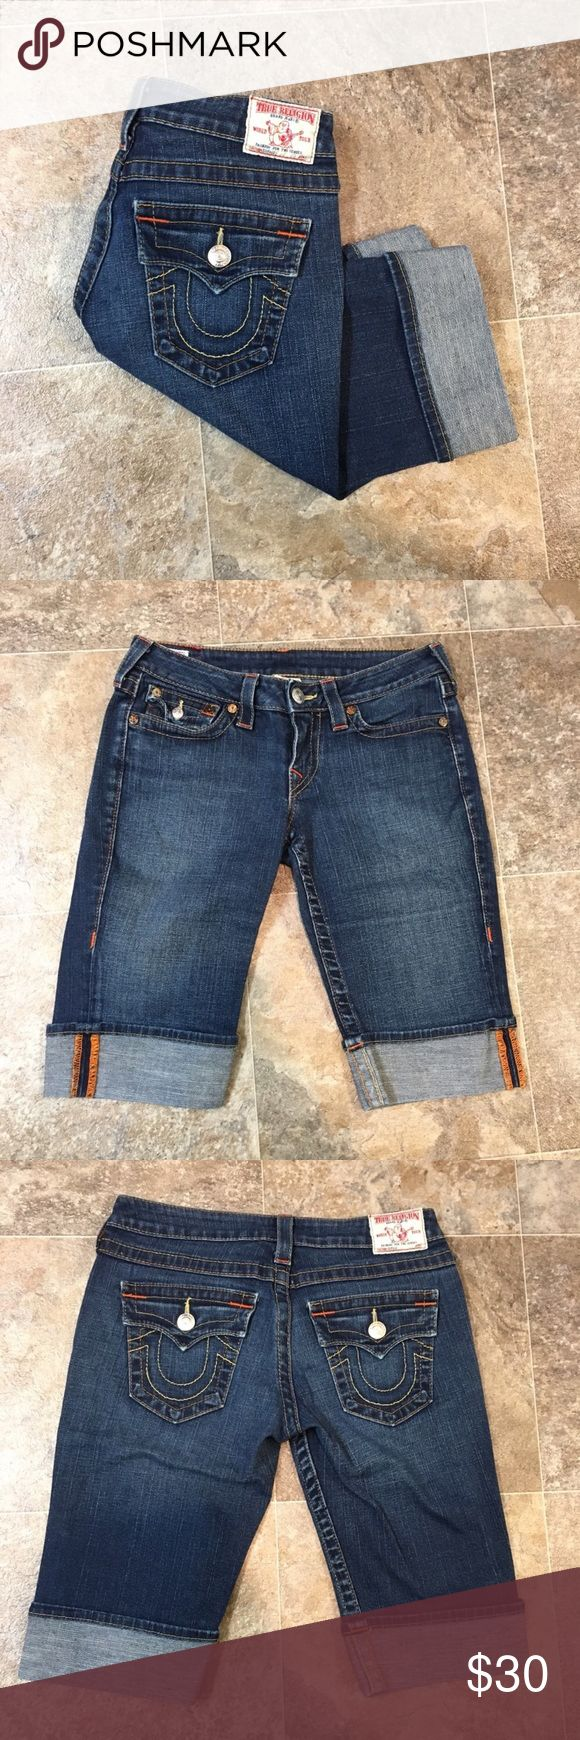 True Religion jean shorts True Religion jean shorts. They're the Sophie style. They are a longer style as well. They are a size 27. They're in great condition, there are no flaws.   🌸BUNDLE AND SAVE  🌸NO TRADES 🌸REASONABLE OFFERS CONSIDERED  🌸FEEL FREE TO ASK QUESTIONS 🌸I DO NOT MODEL True Religion Shorts Jean Shorts